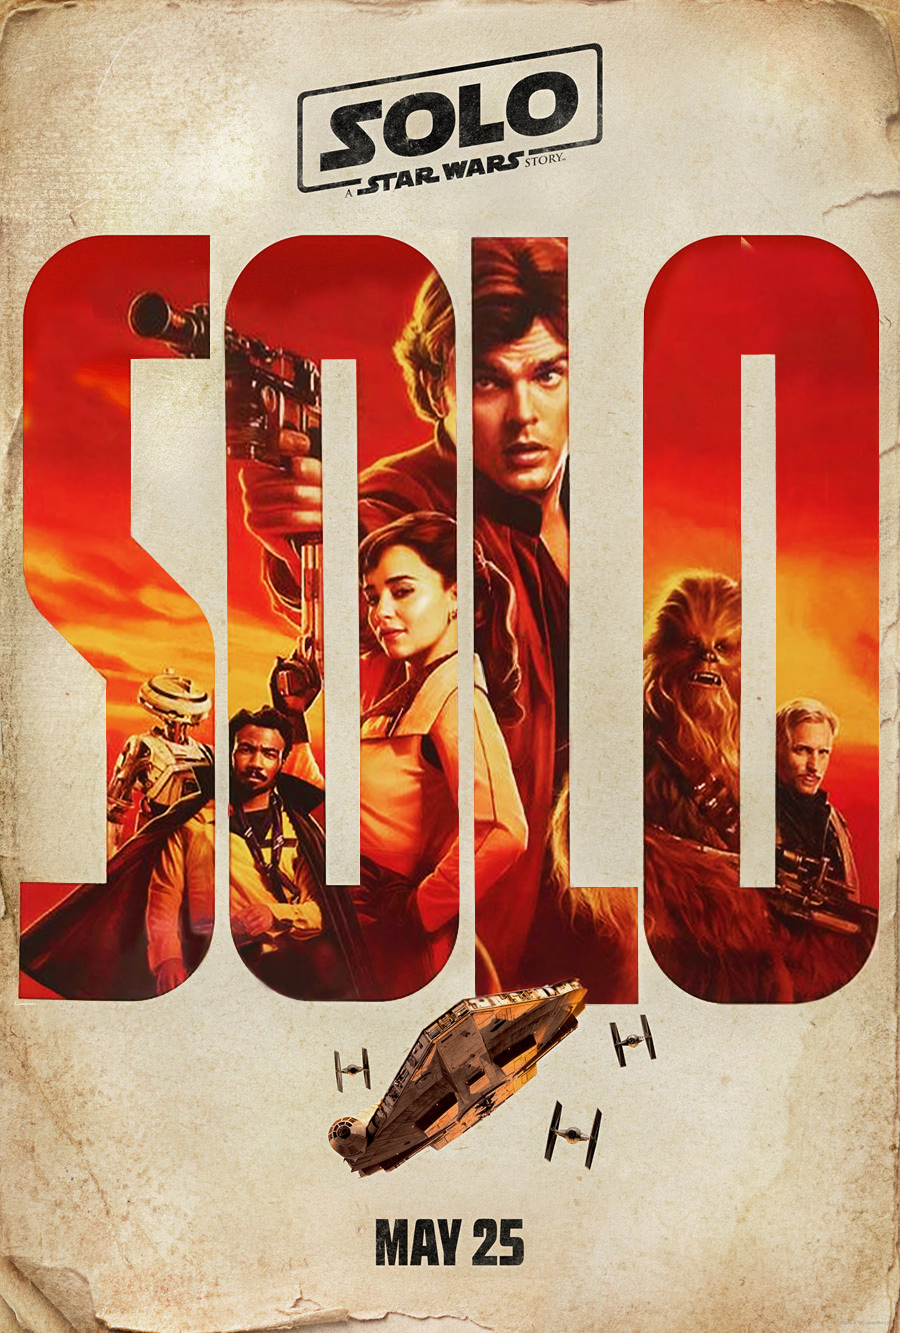 solo-a-star-wars-story-new-theatrical-teaser-poster.jpg